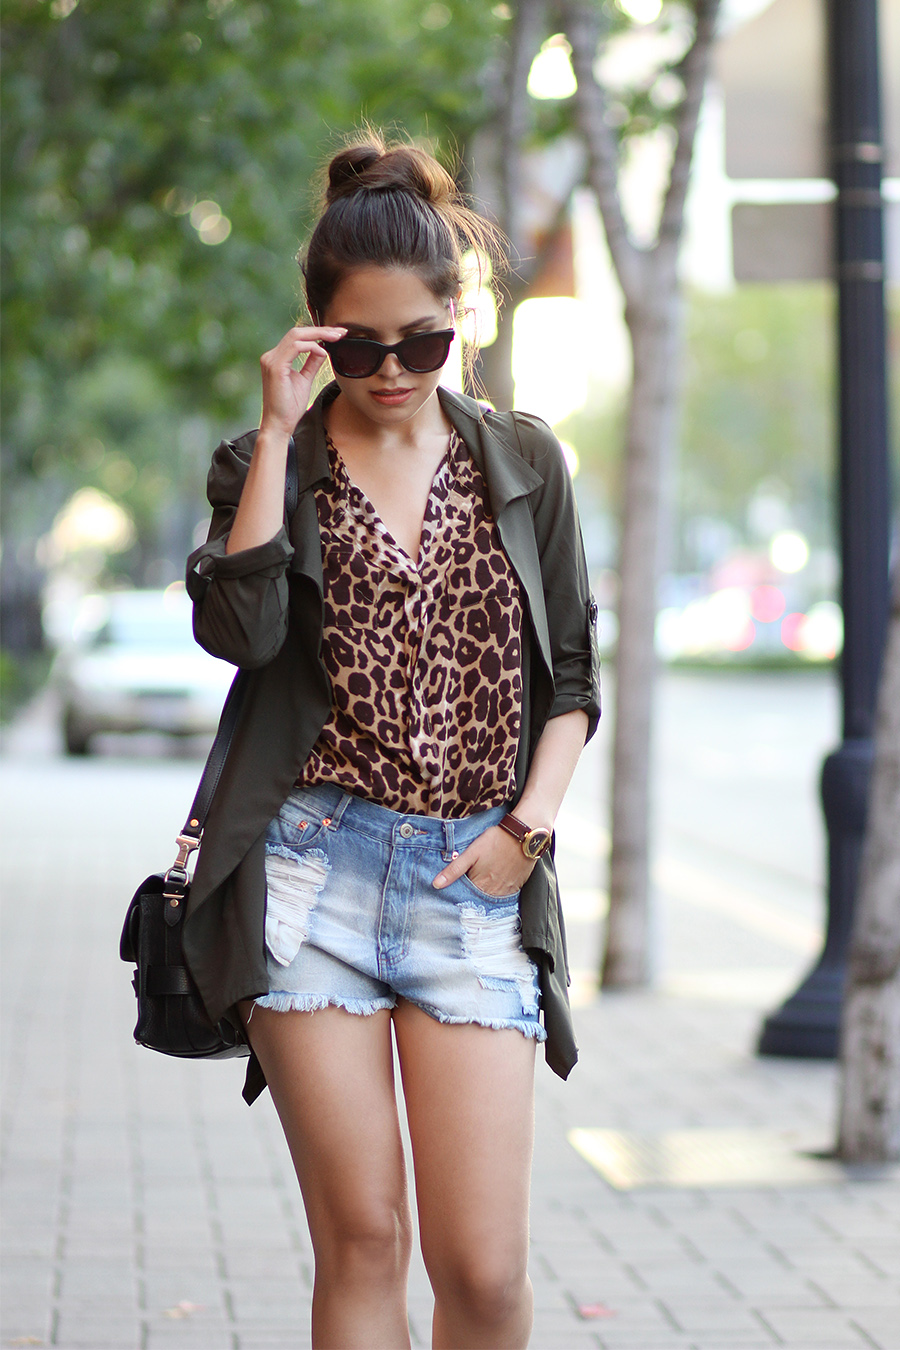 Adriana Gastelum is wearing a green trench coat from Papaya, leopard print top from Windsor, ripped denim shorts from Forever21 and a bag from Proenza Schouler